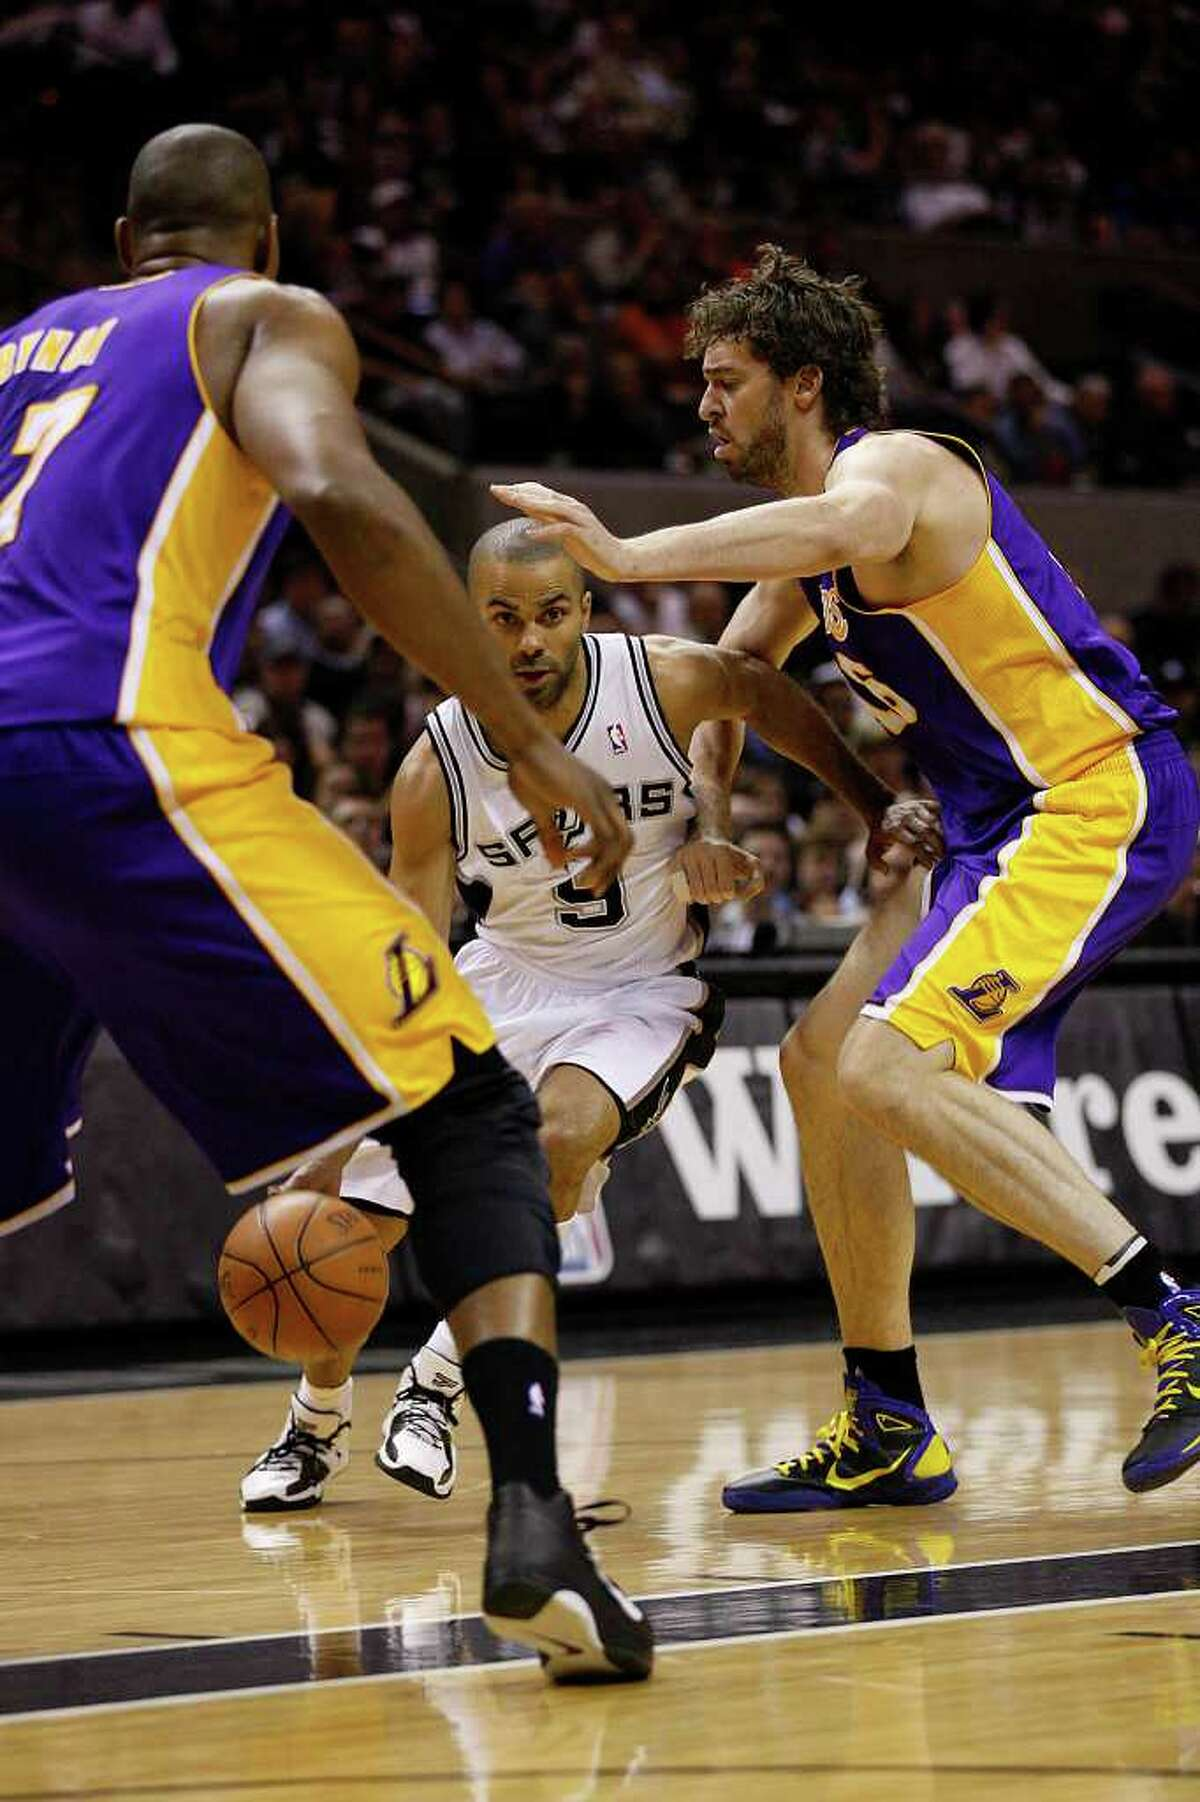 SPURS -- San Antonio Spurs Tony Parker tries to split the defense of Los Angeles Lakers Andrew Bynum, left, and Pau Gasol, during the first half at the AT&T Center, Sunday, March 6, 2011. JERRY LARA/glara@express-news.net